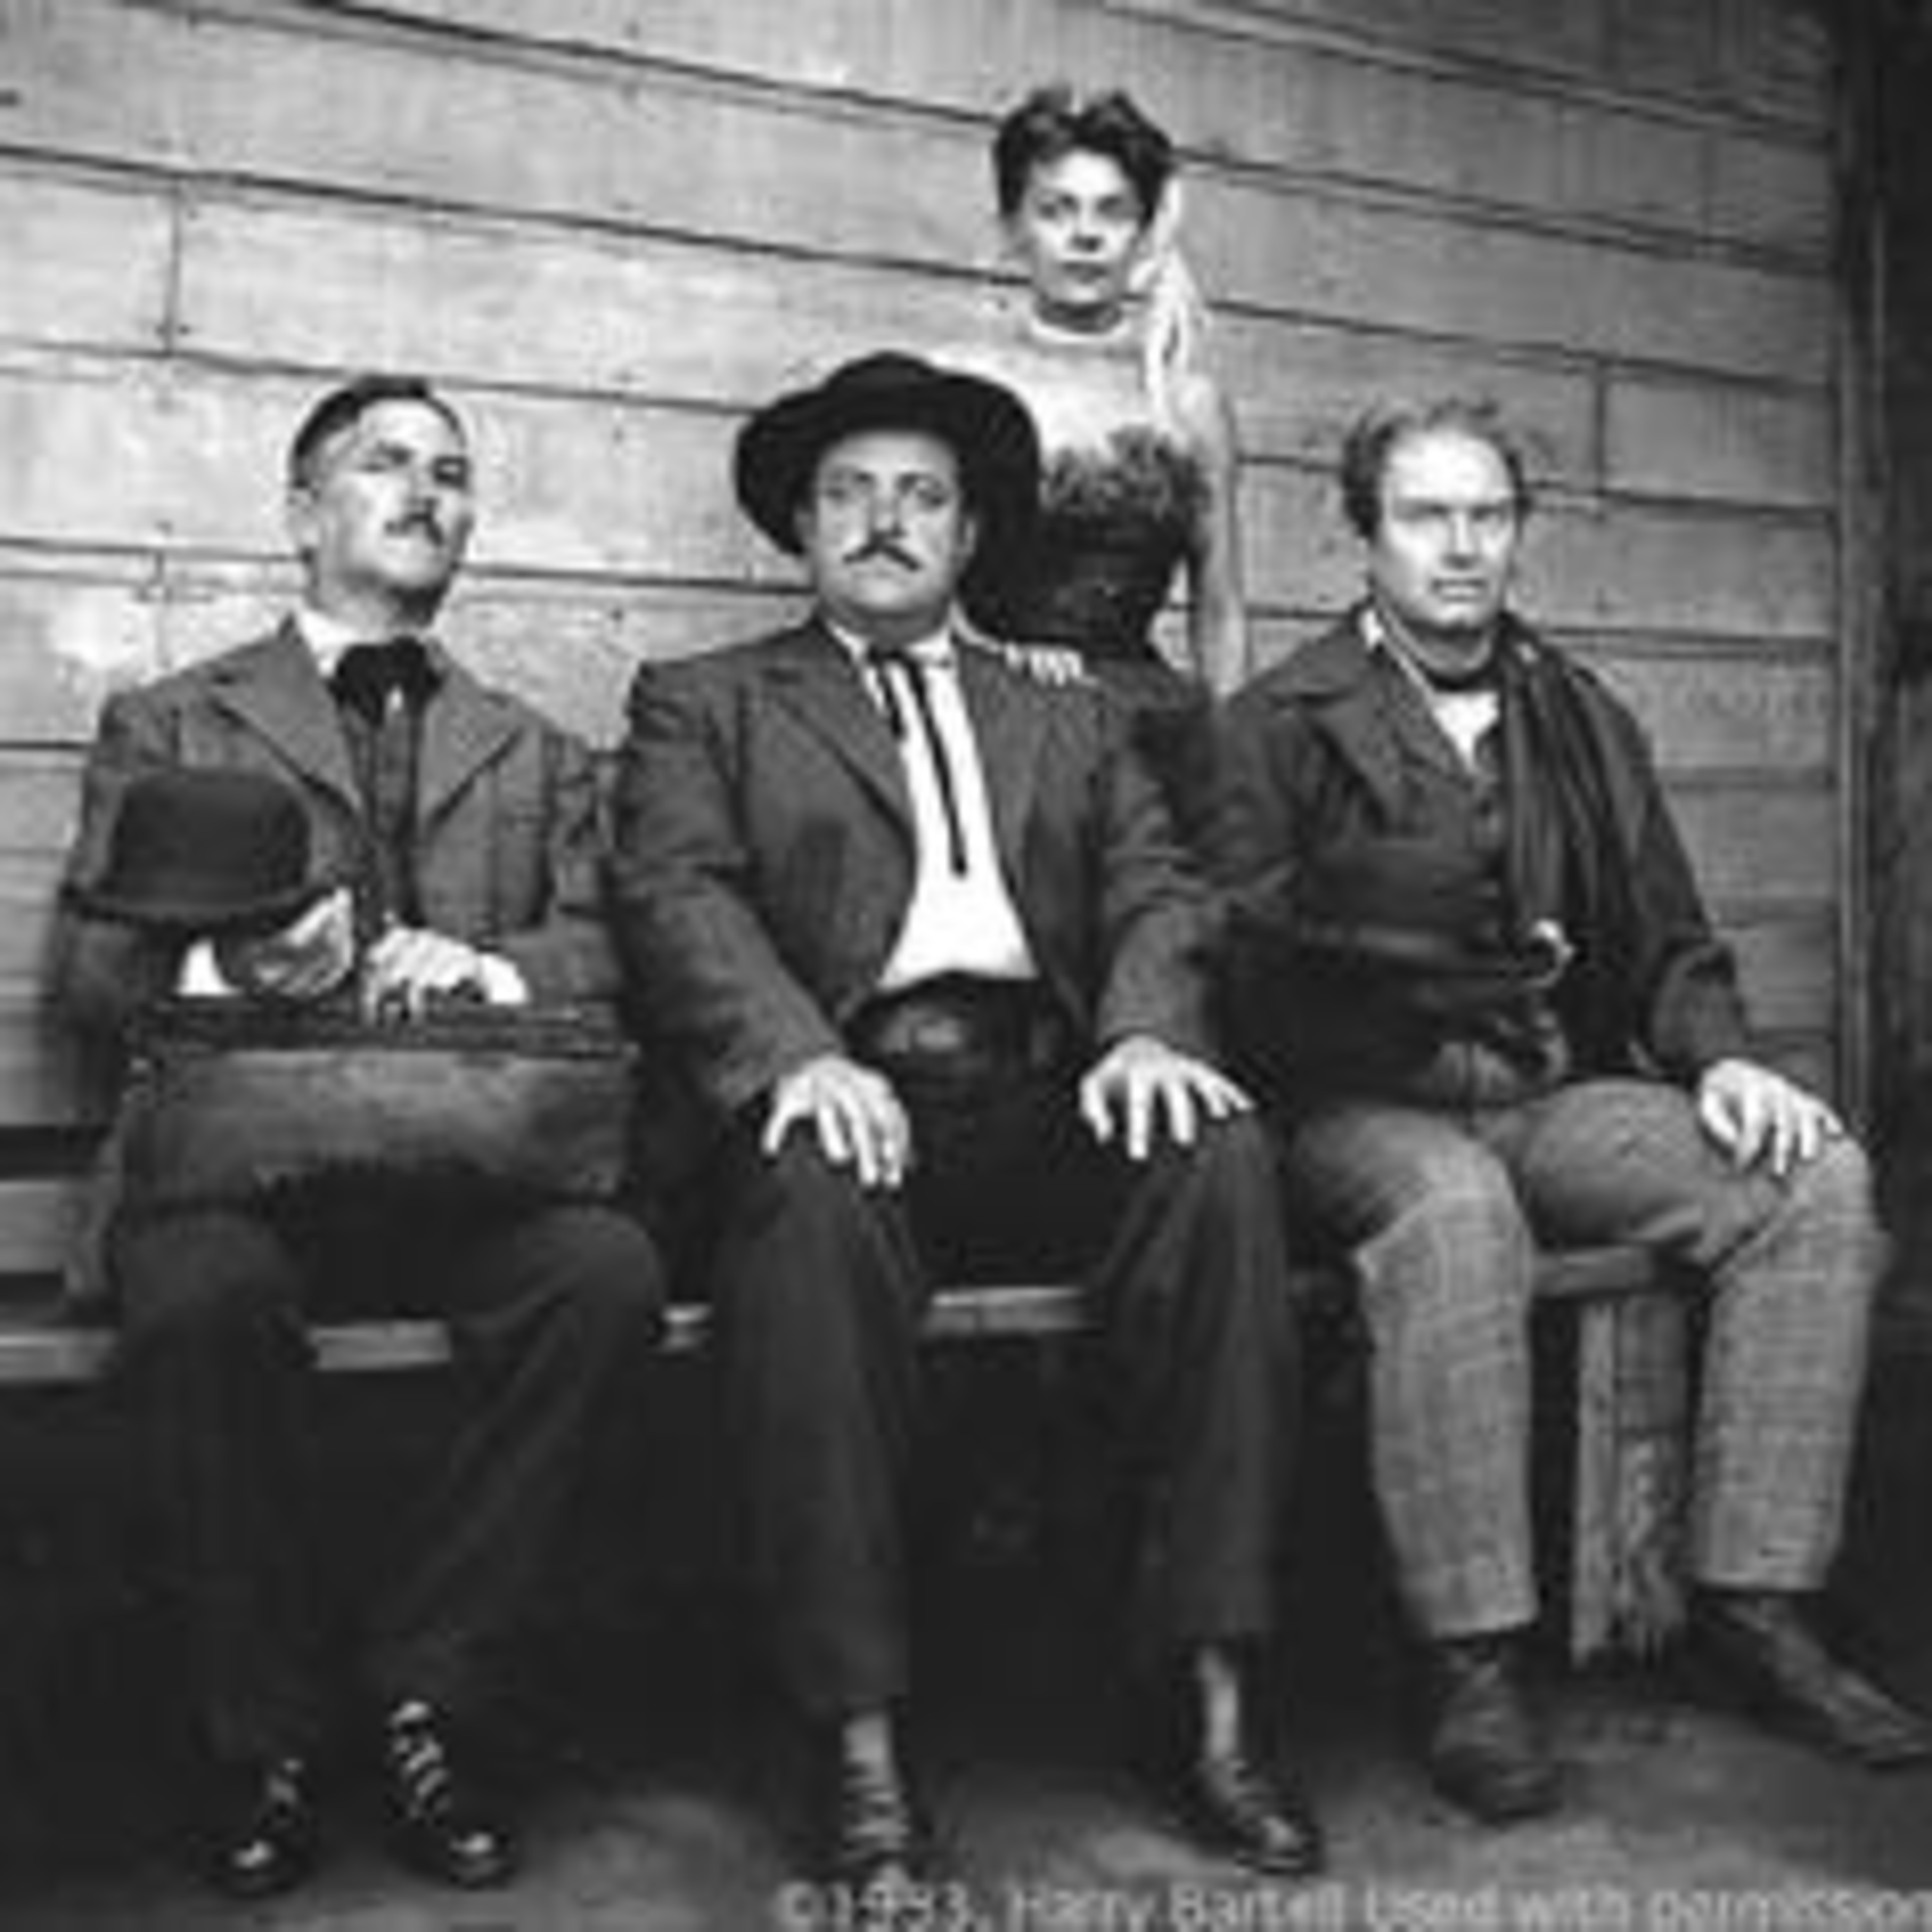 The Gunsmoke Podcast - Wind - Flashback - Radio's Last Great Dramatic Series - Episodes 61 and 62